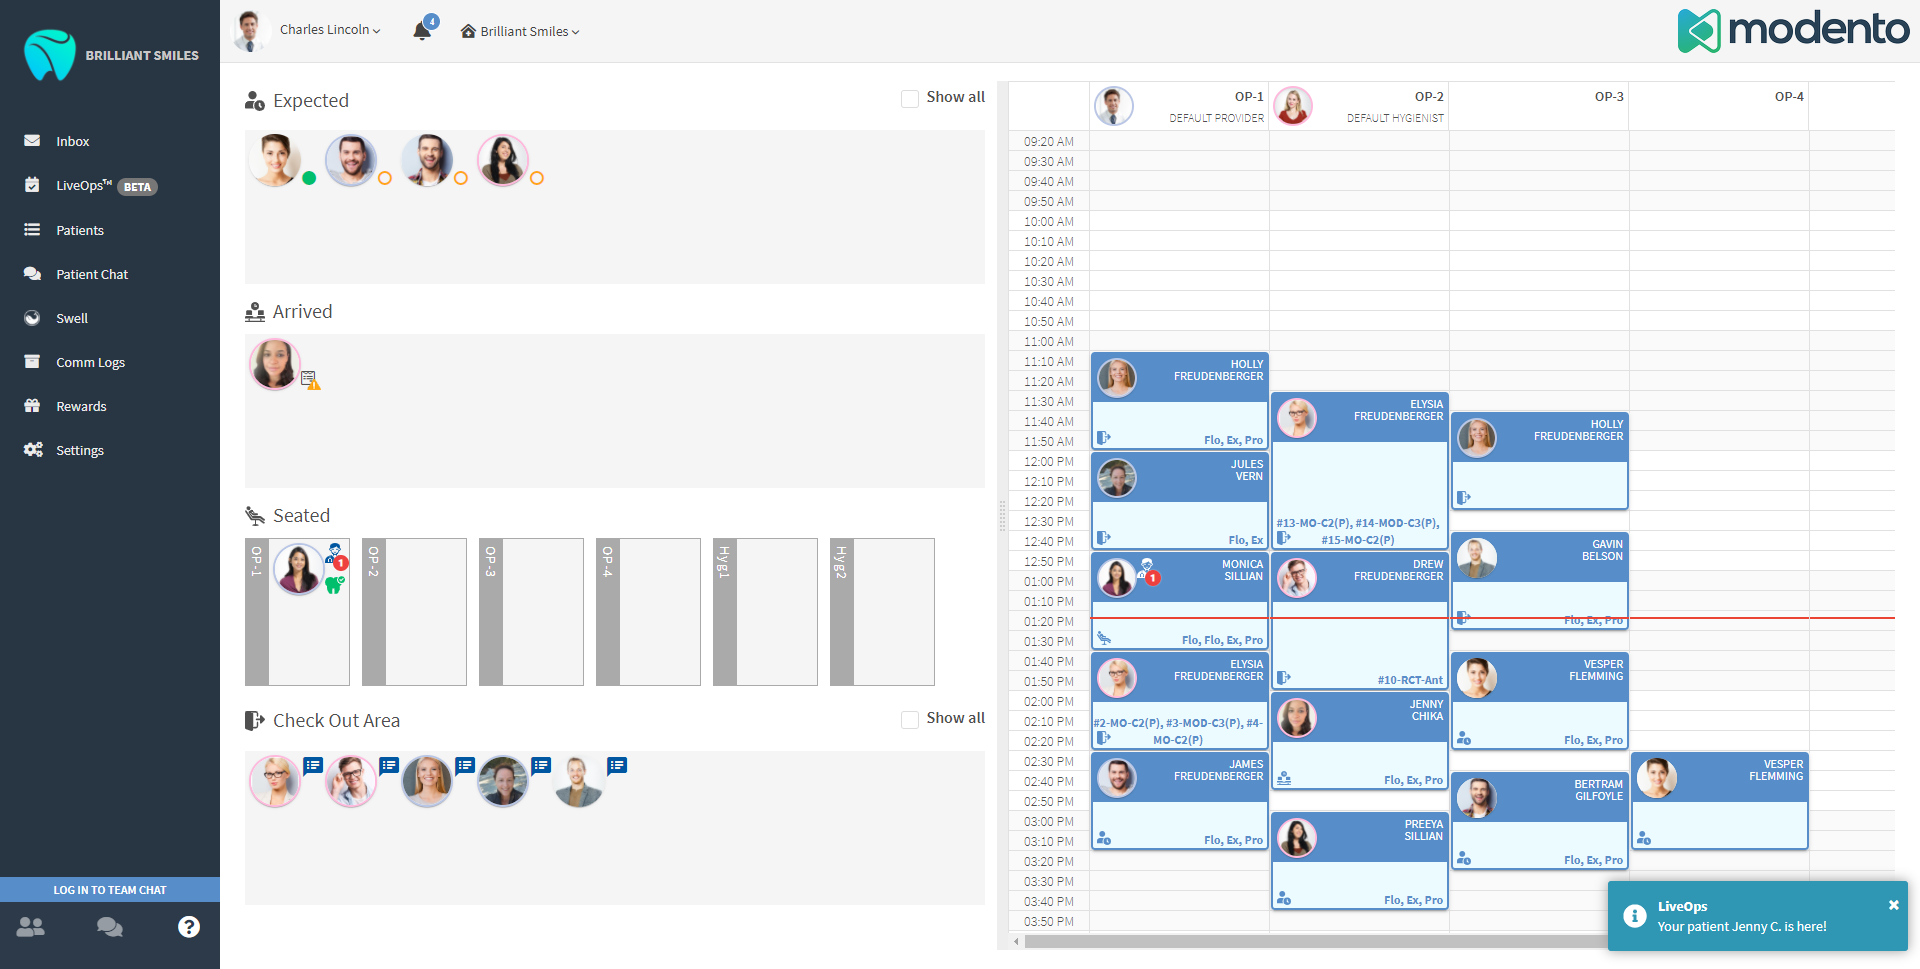 LiveOps module shows when patients have arrived, are seated, and are ready to check out